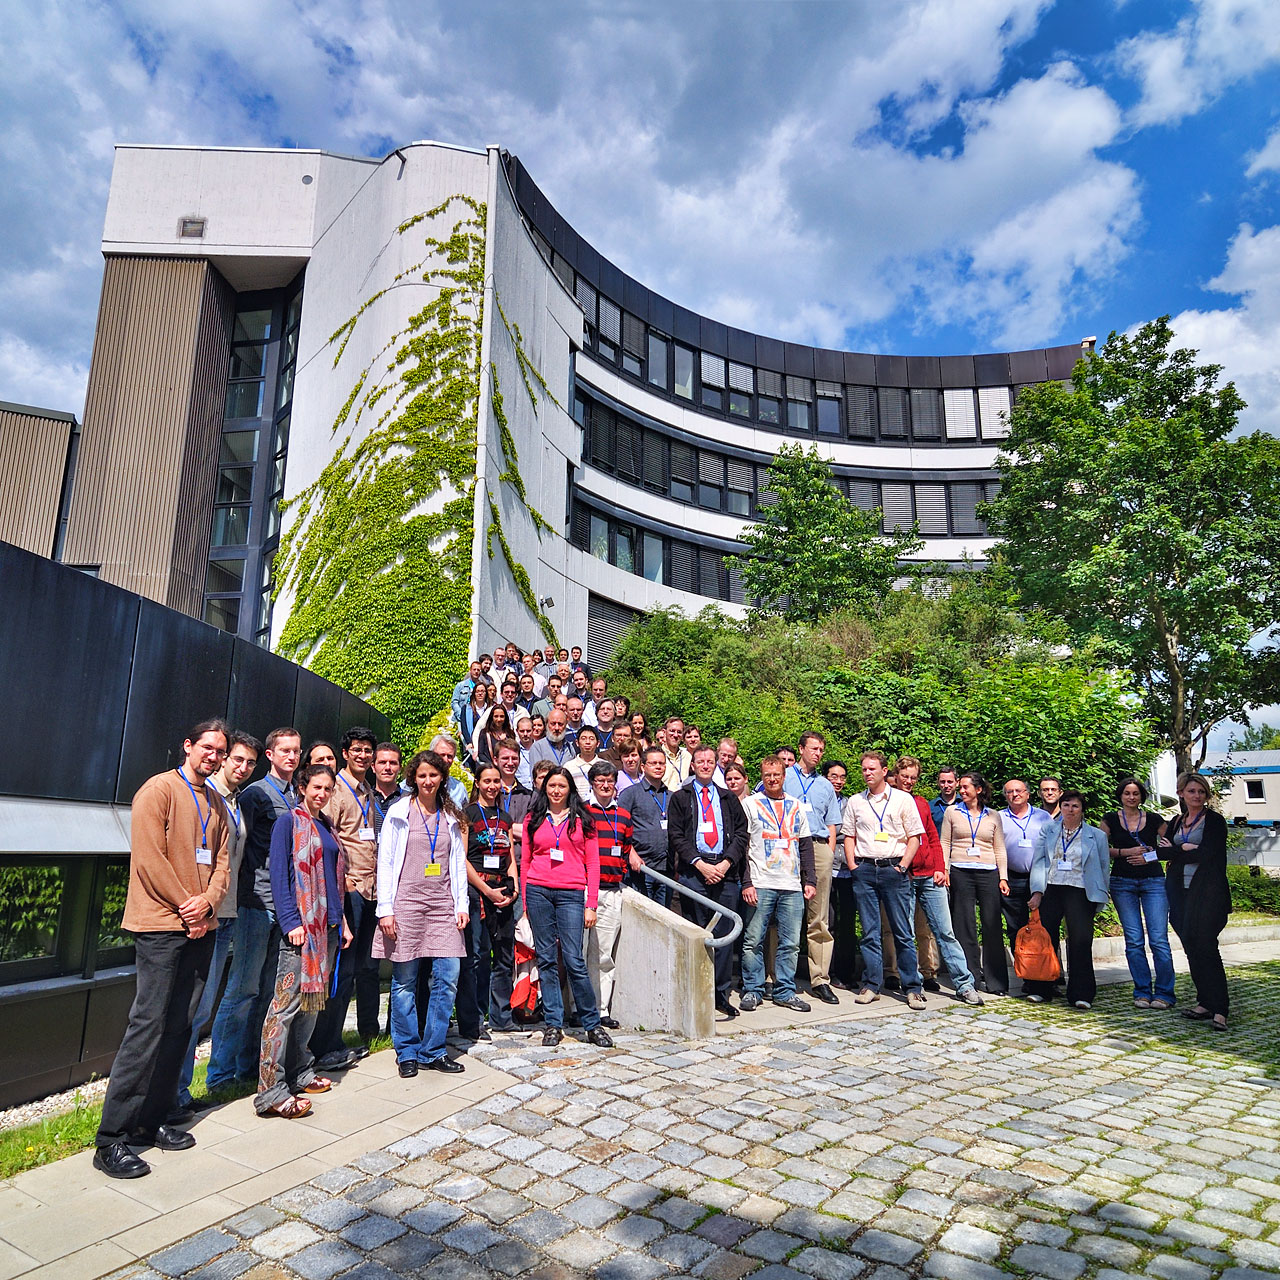 ESO Workshop on Central Massive Objects (June 2010)